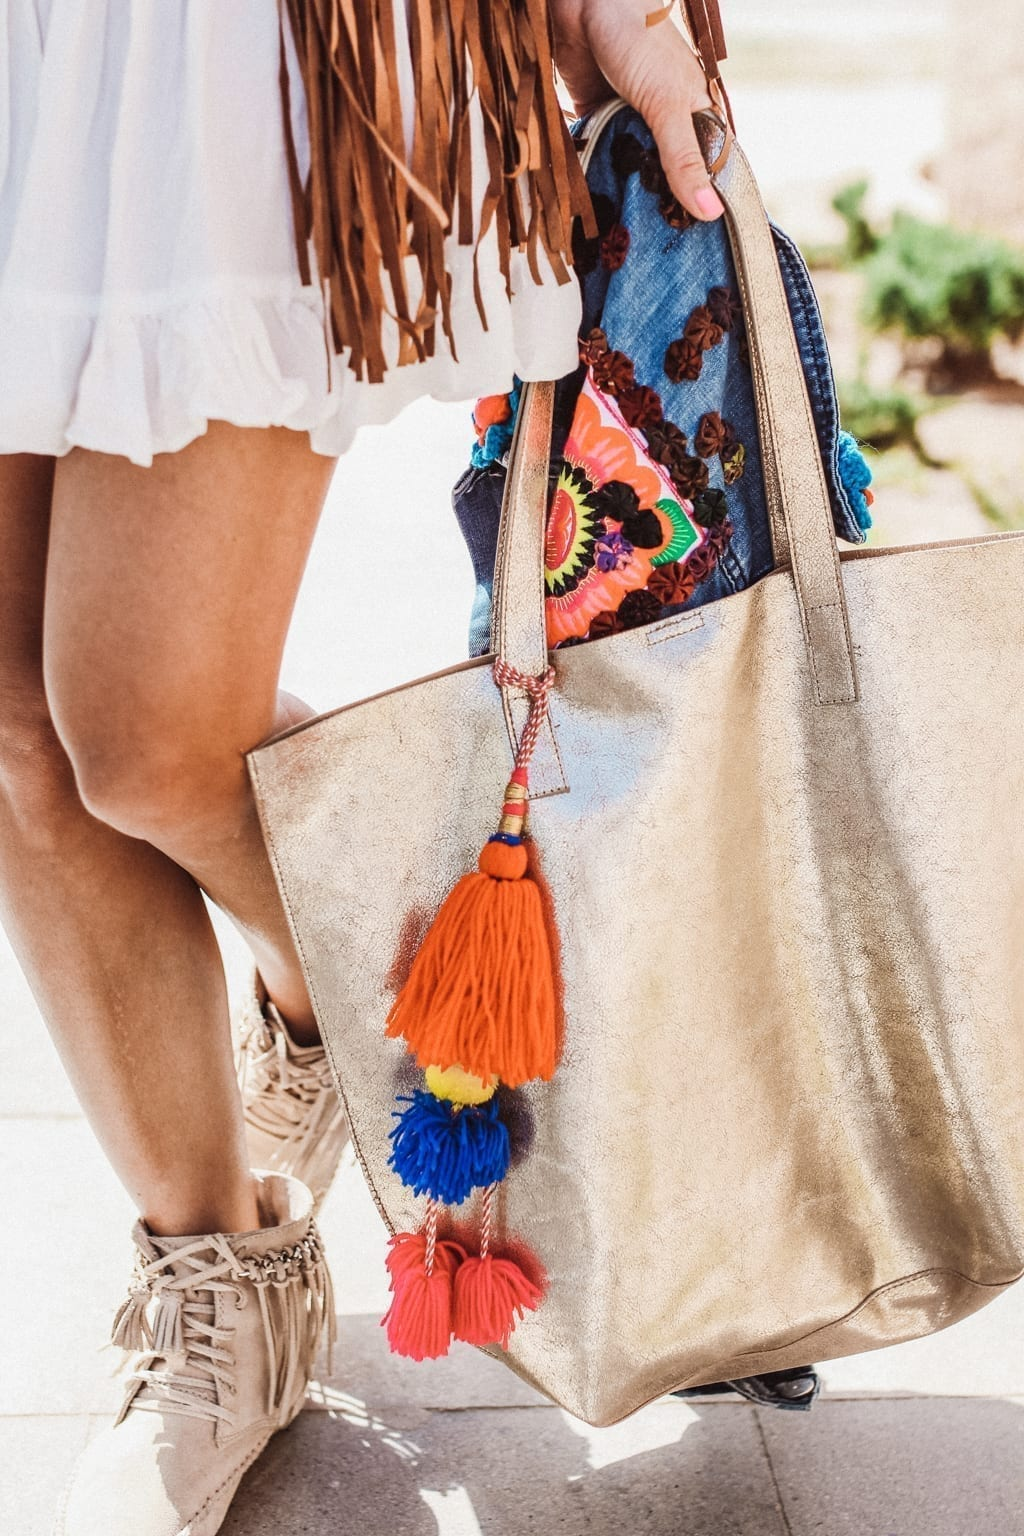 CK1605_Constantly-K-Karin-Kaswurm-Georg-Teigl-Ibiza-Holiday-Spain-Blog-Street-Style-Fashion-Boho-Chic-Beach-Style-7741